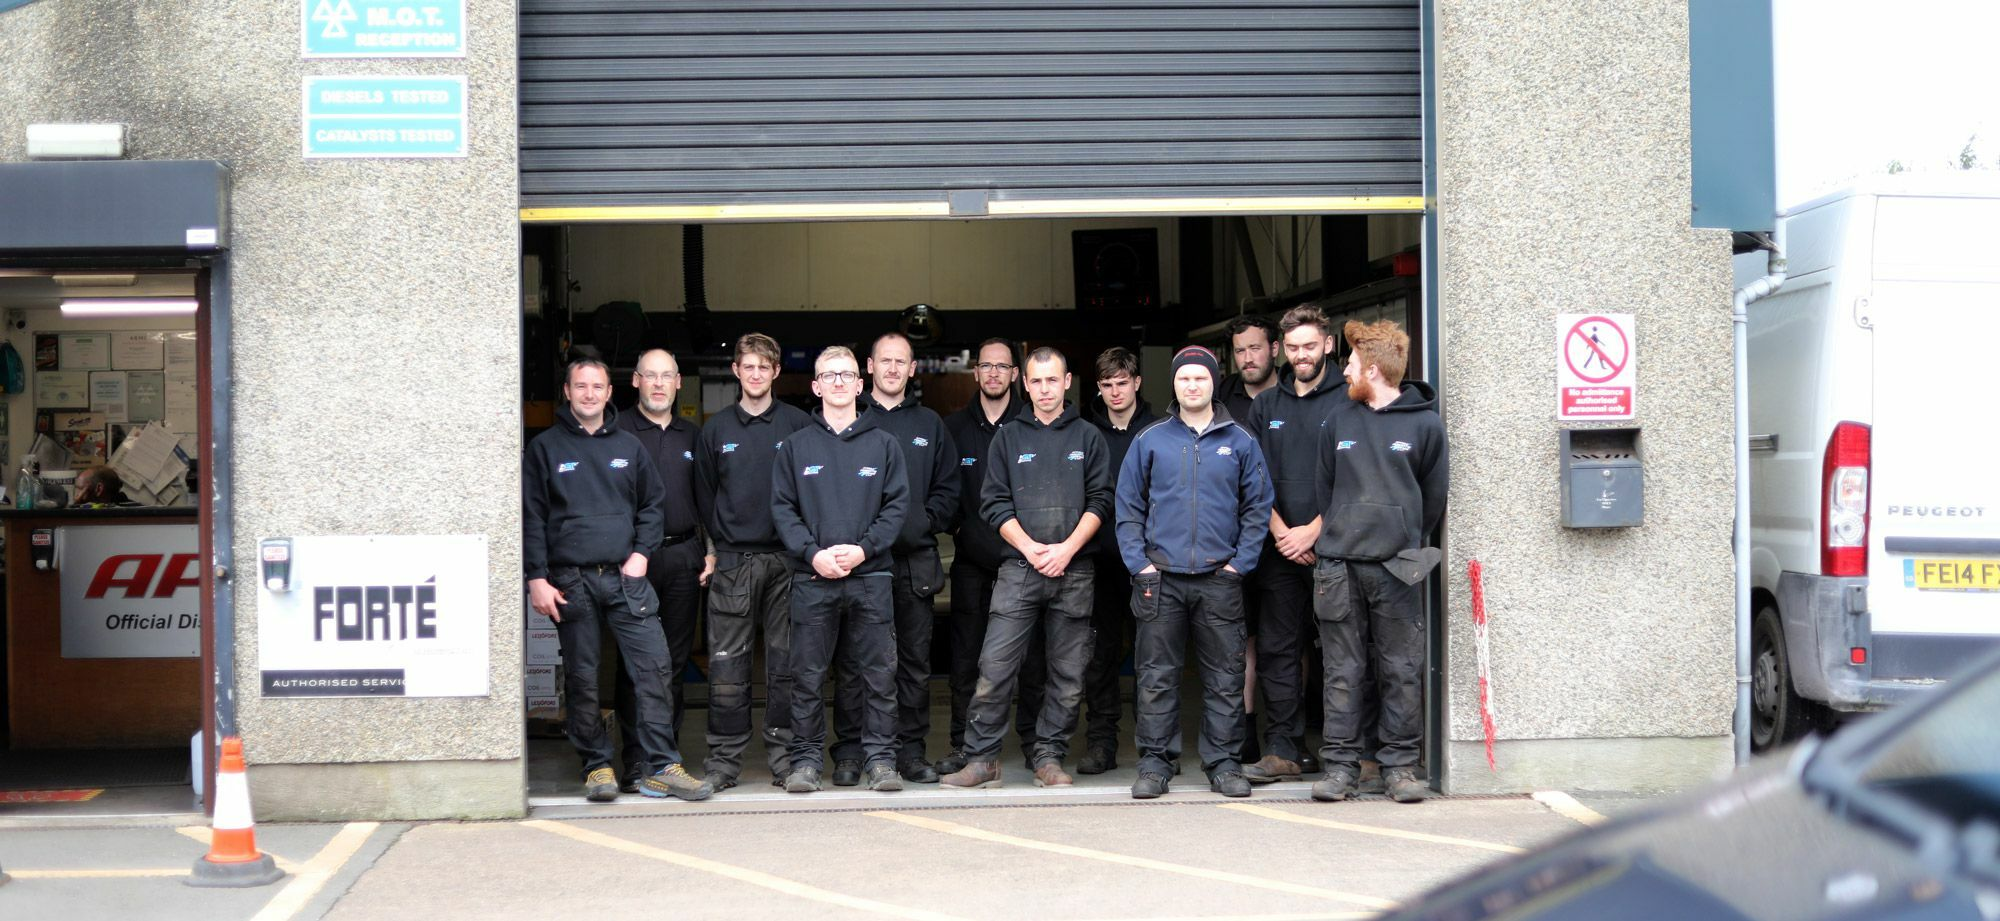 The team at Arywn's Garage